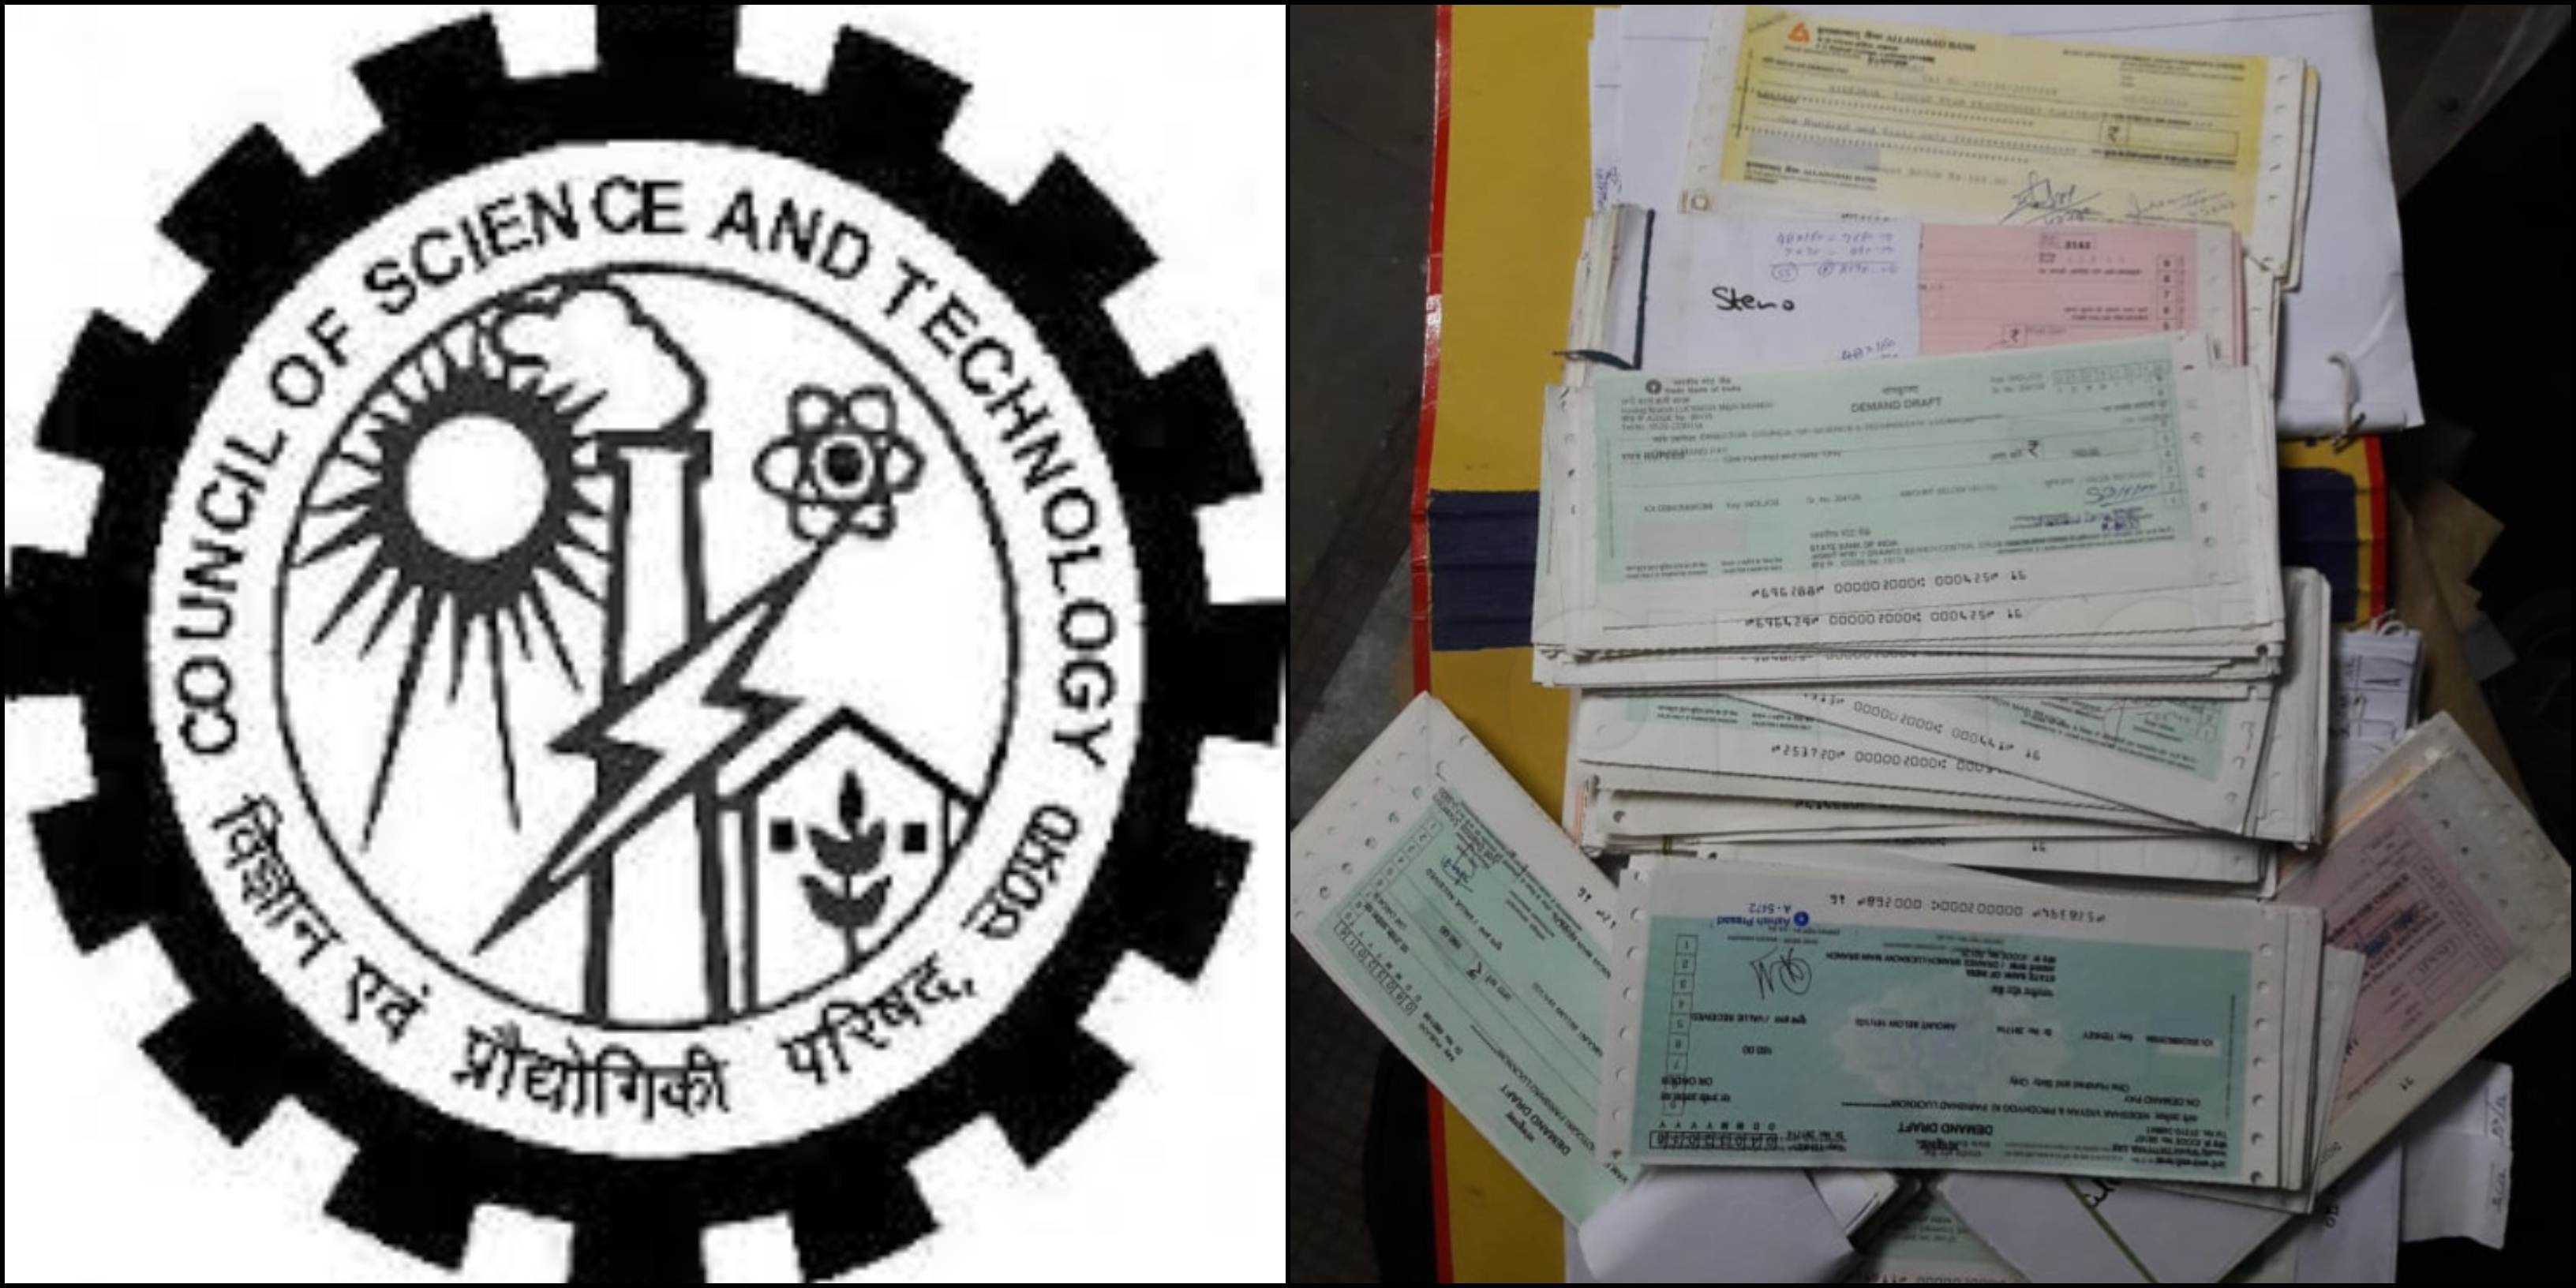 Council of Science And Technology candidates bank draft become dust